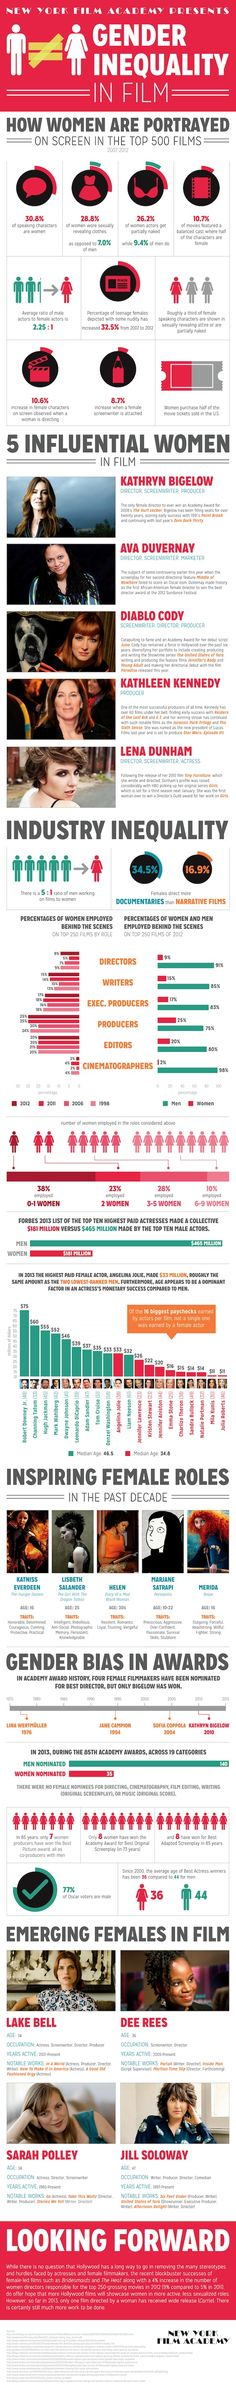 Gender Inequality in Film: In Infographic Form | Filmmakers, Film Industry, Film Festivals, Awards & Movie Reviews | Indiewire